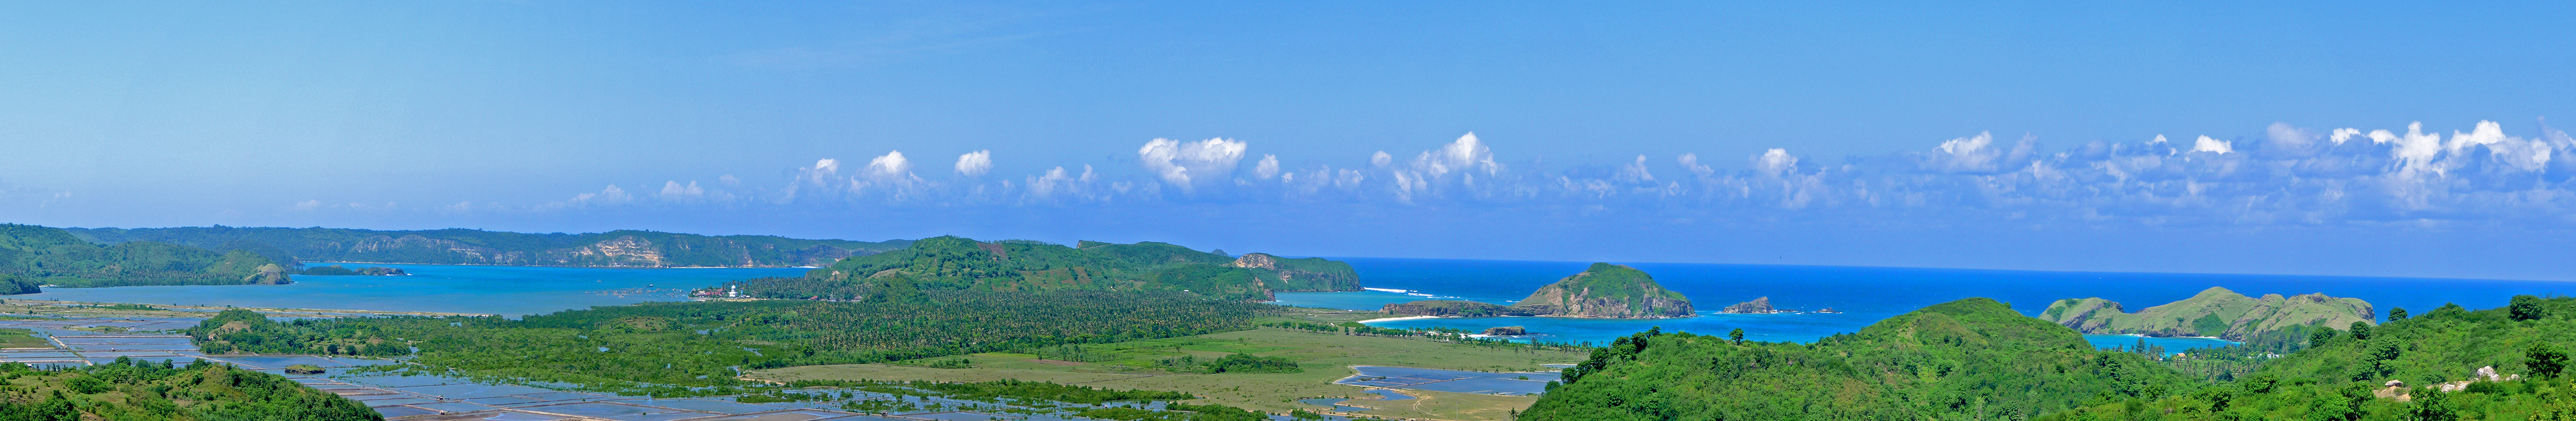 Buy land in Lombok and get this spectacular ocean view!